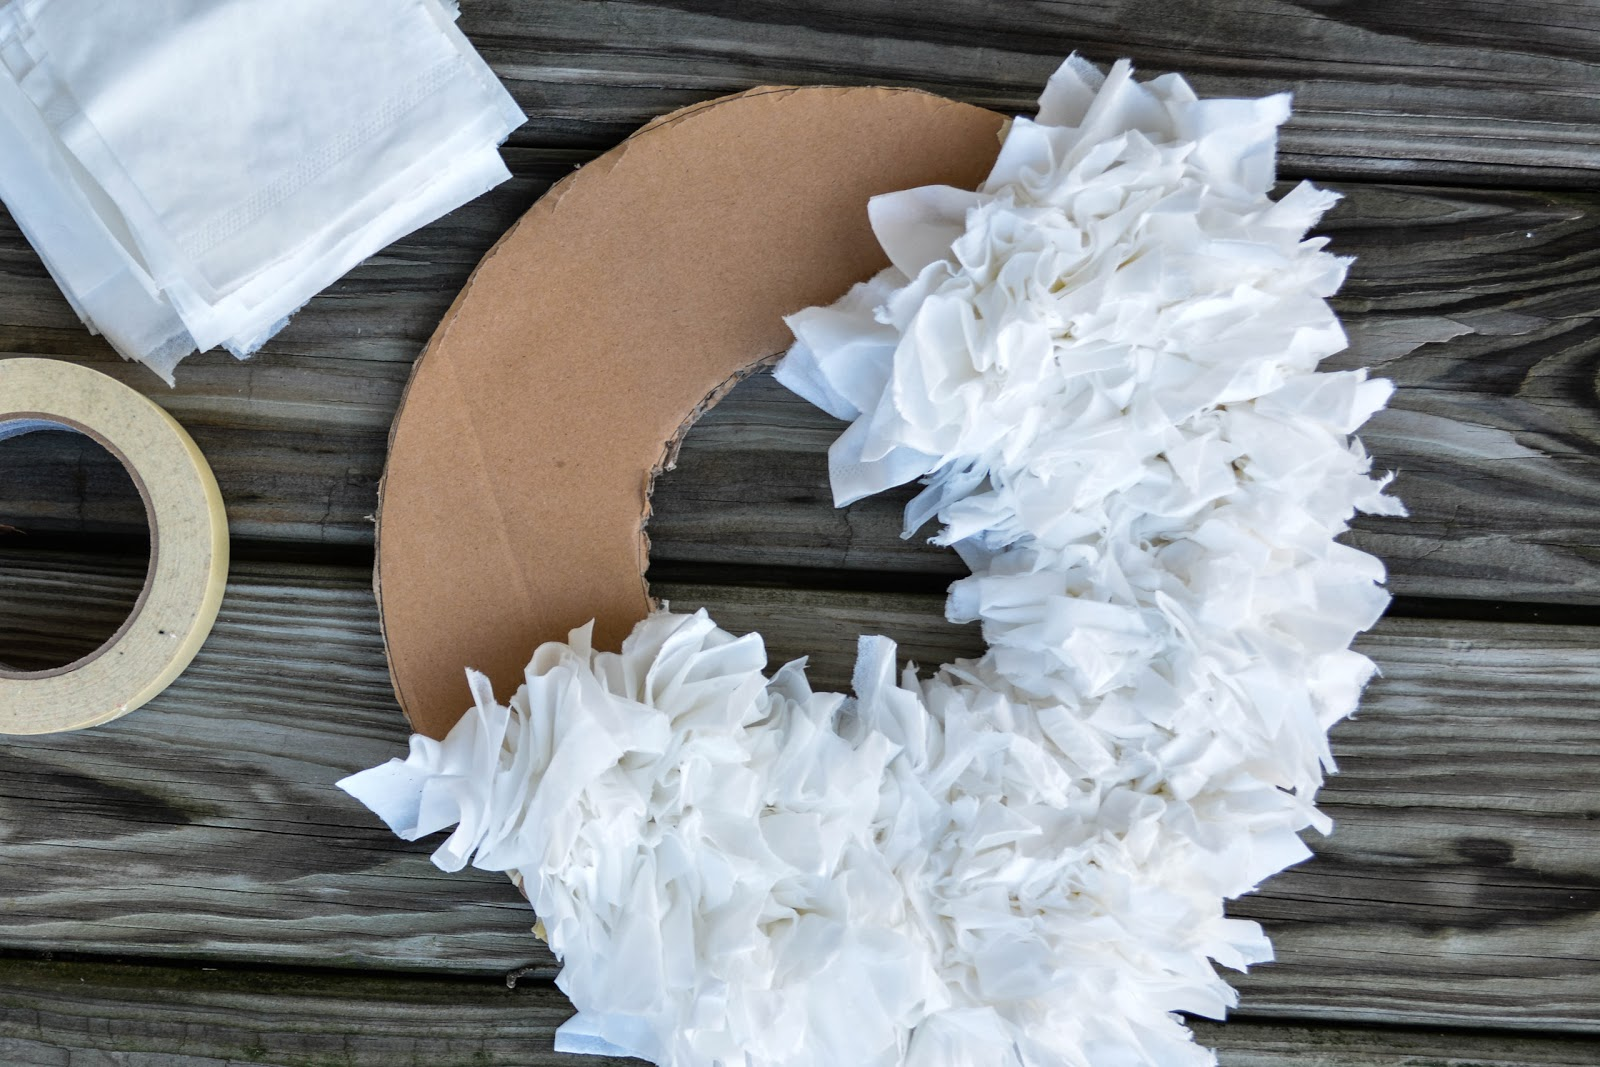 Diy tissue wreath 5 elisabeth mcknight for Handmade things for home